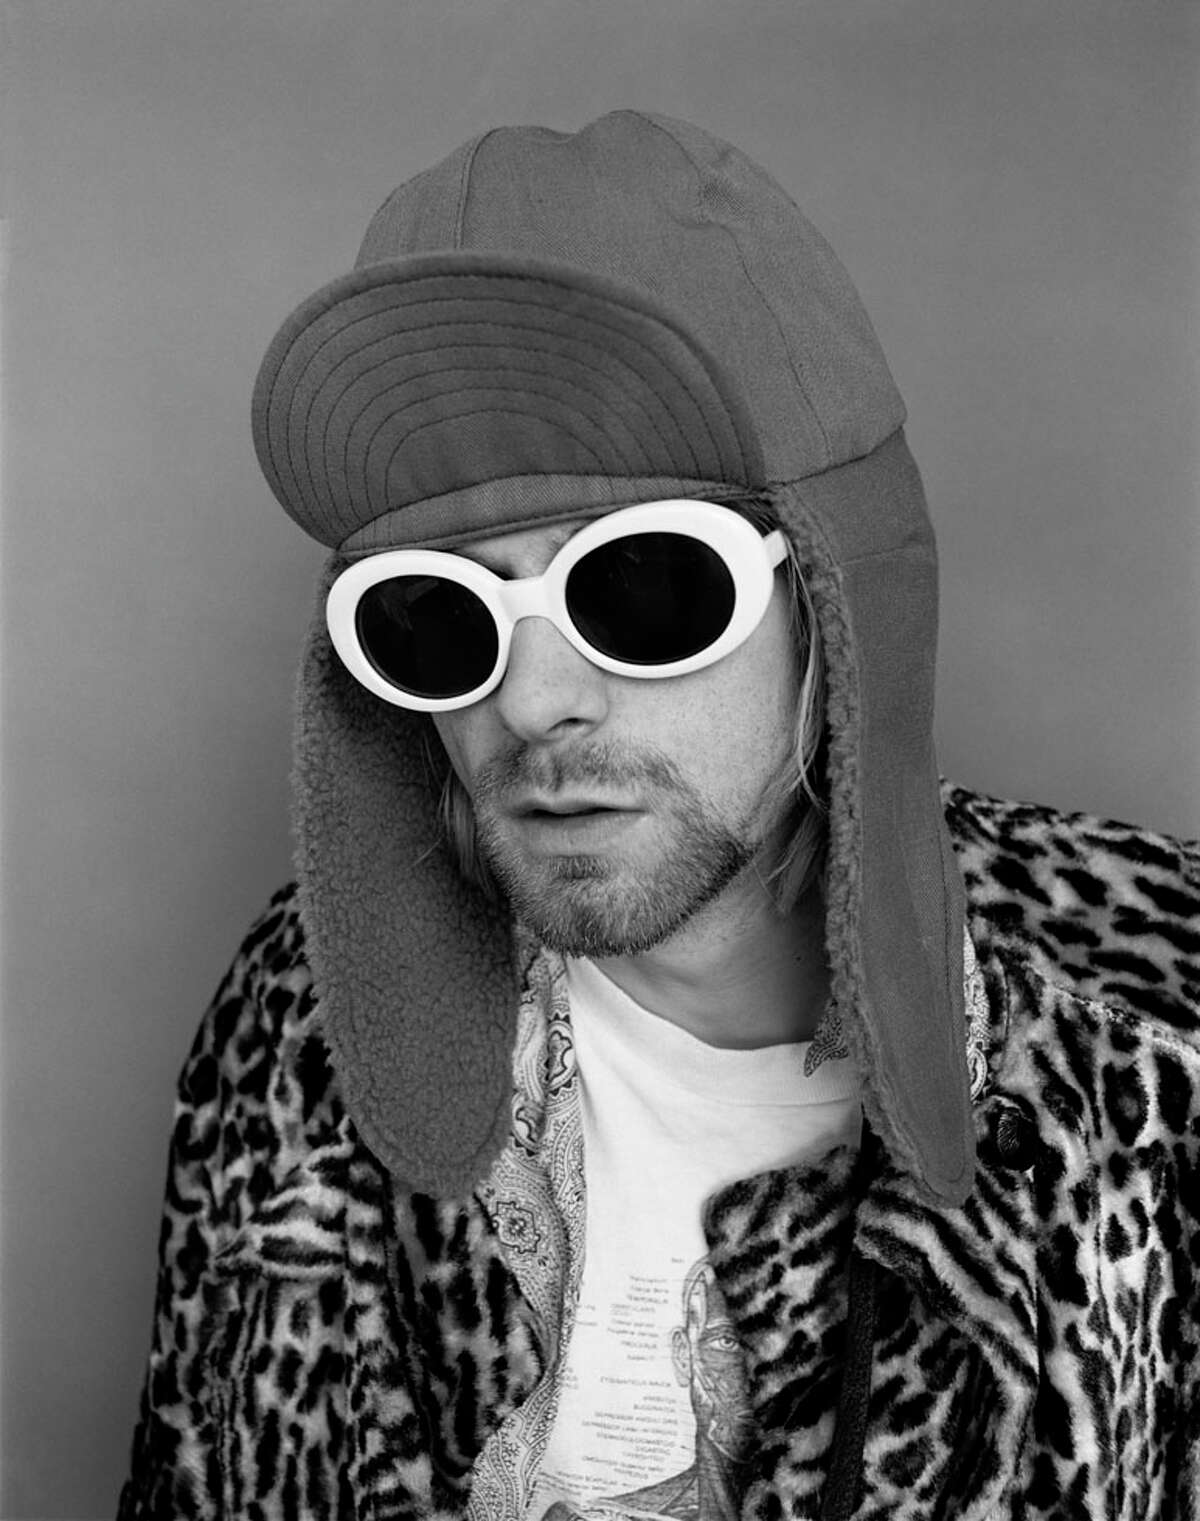 Kurt Cobain wore women's sunglasses during the shoot for photographer Jesse Frohman. Cobain was four hours late for the photo shoot.